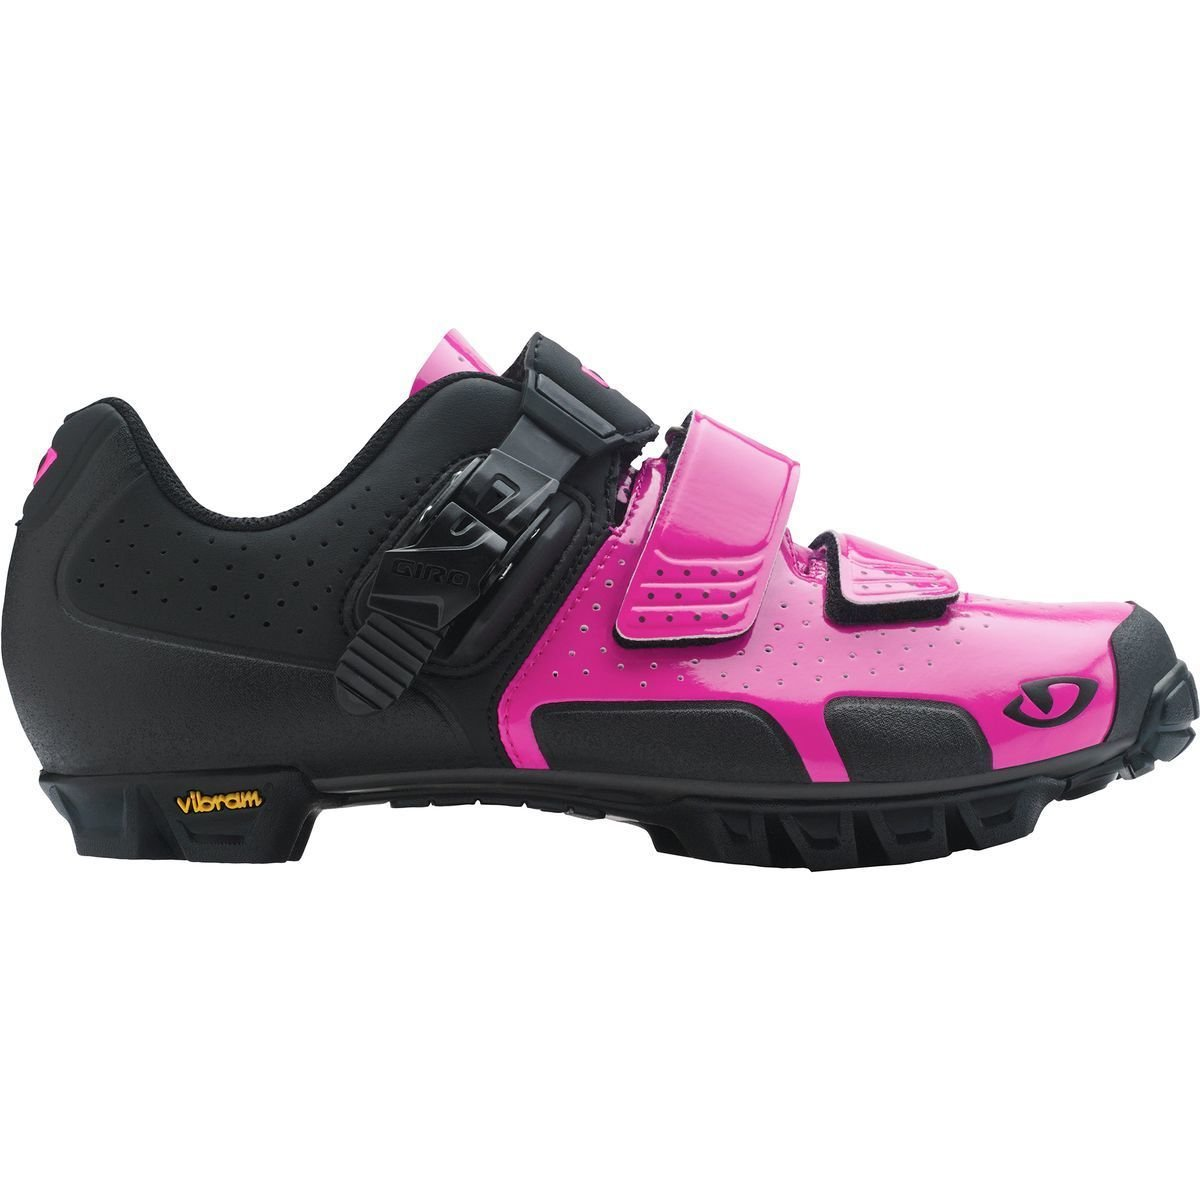 Giro SICA VR70 Cycling Shoe - Women's Bright Pink/Black, 38.5